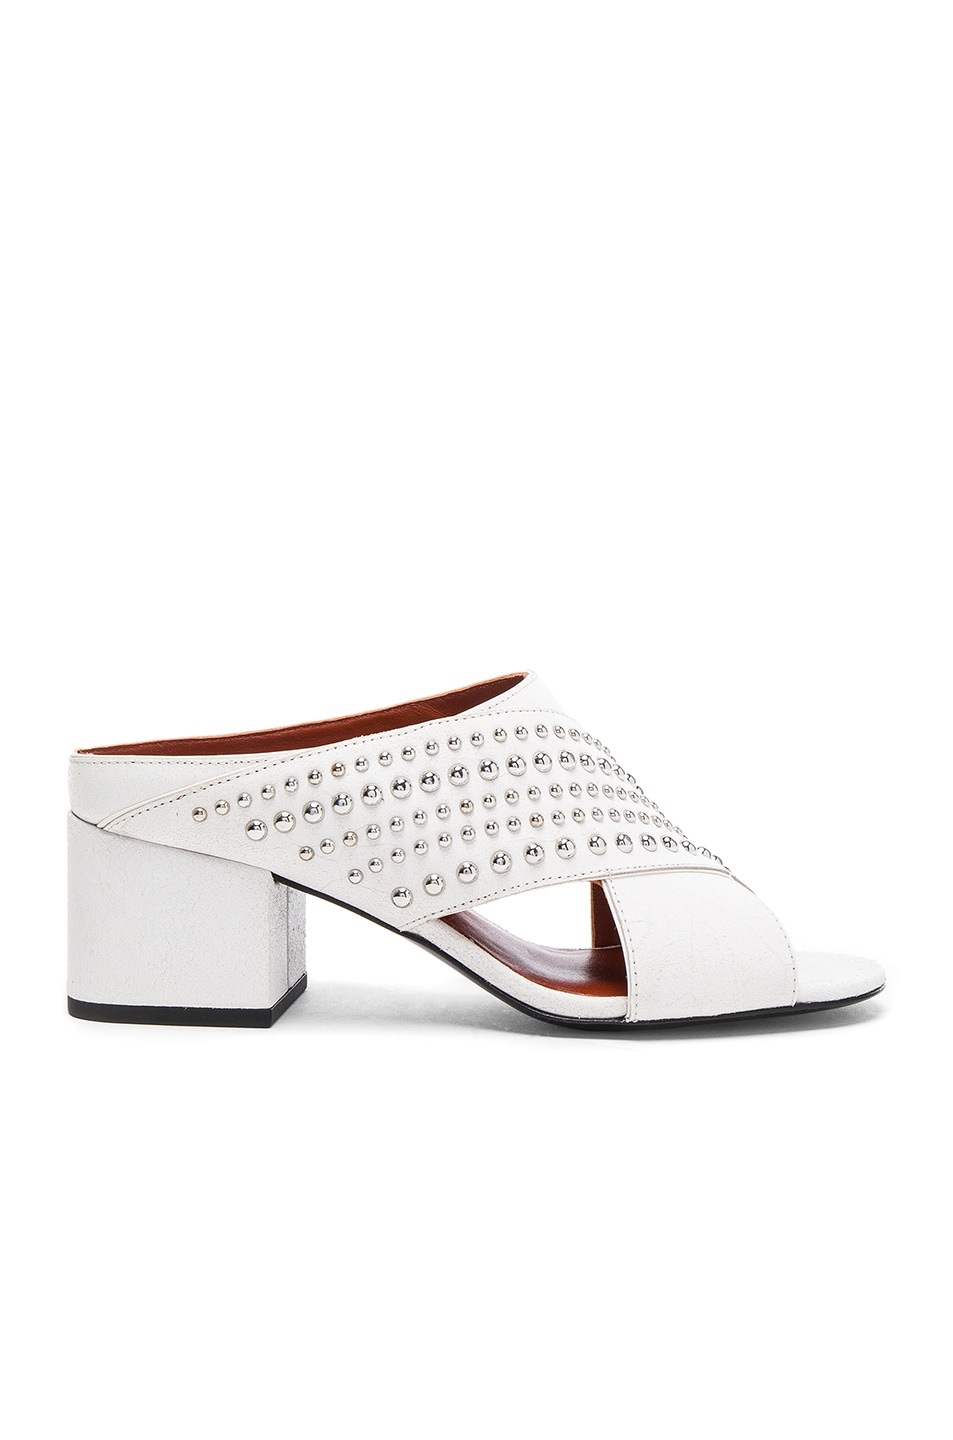 Image 1 of 3.1 phillip lim Crisscross Leather Cube Open Toe Slip Ons in White